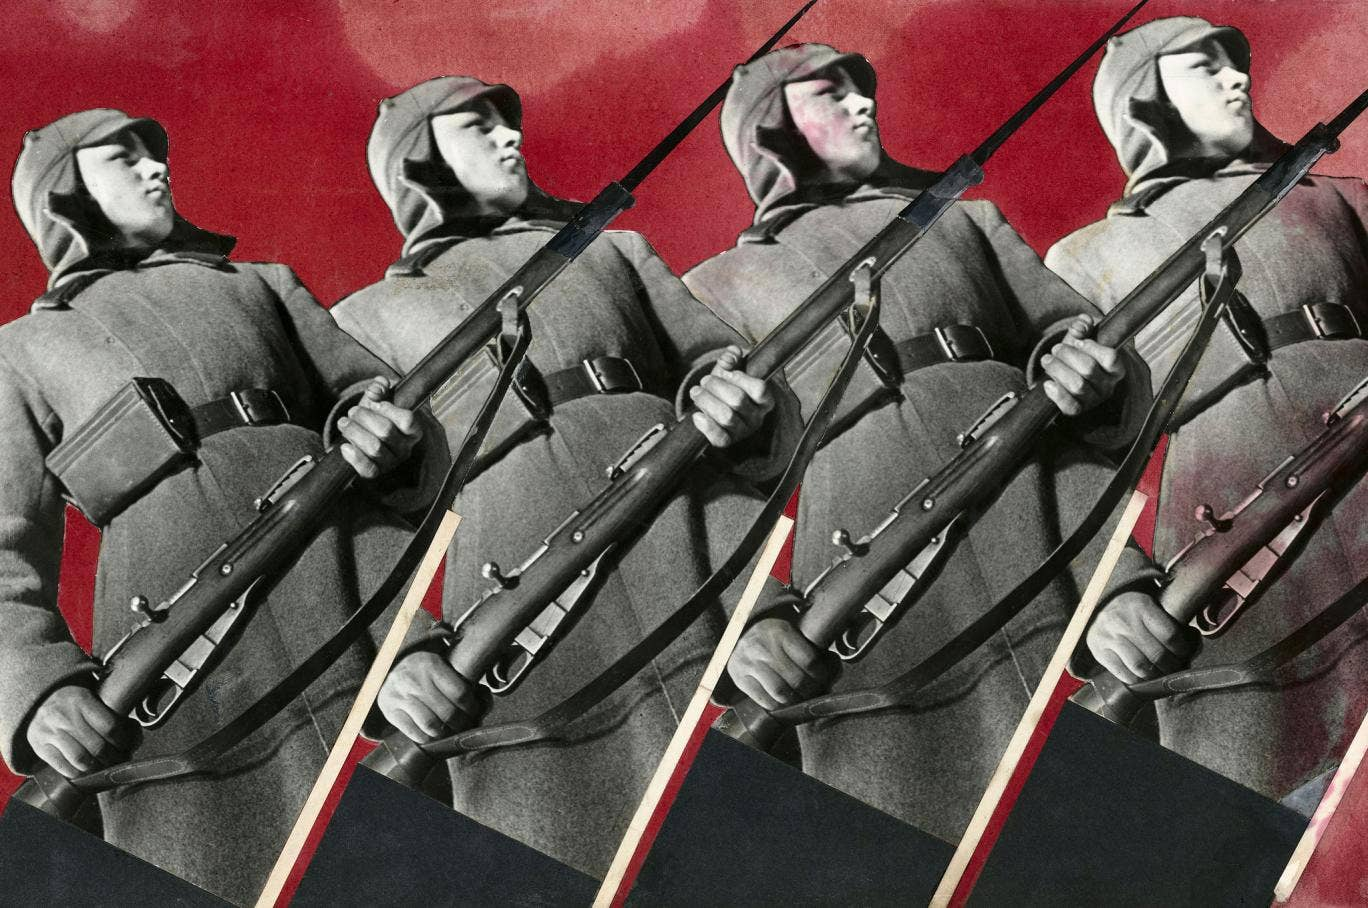 In the words of the curator Olga Sviblova: 'Soviet art was obliged to reflect Soviet myths about the happiest people in the happiest country on earth, and not real life.' Red Army Men, 1930